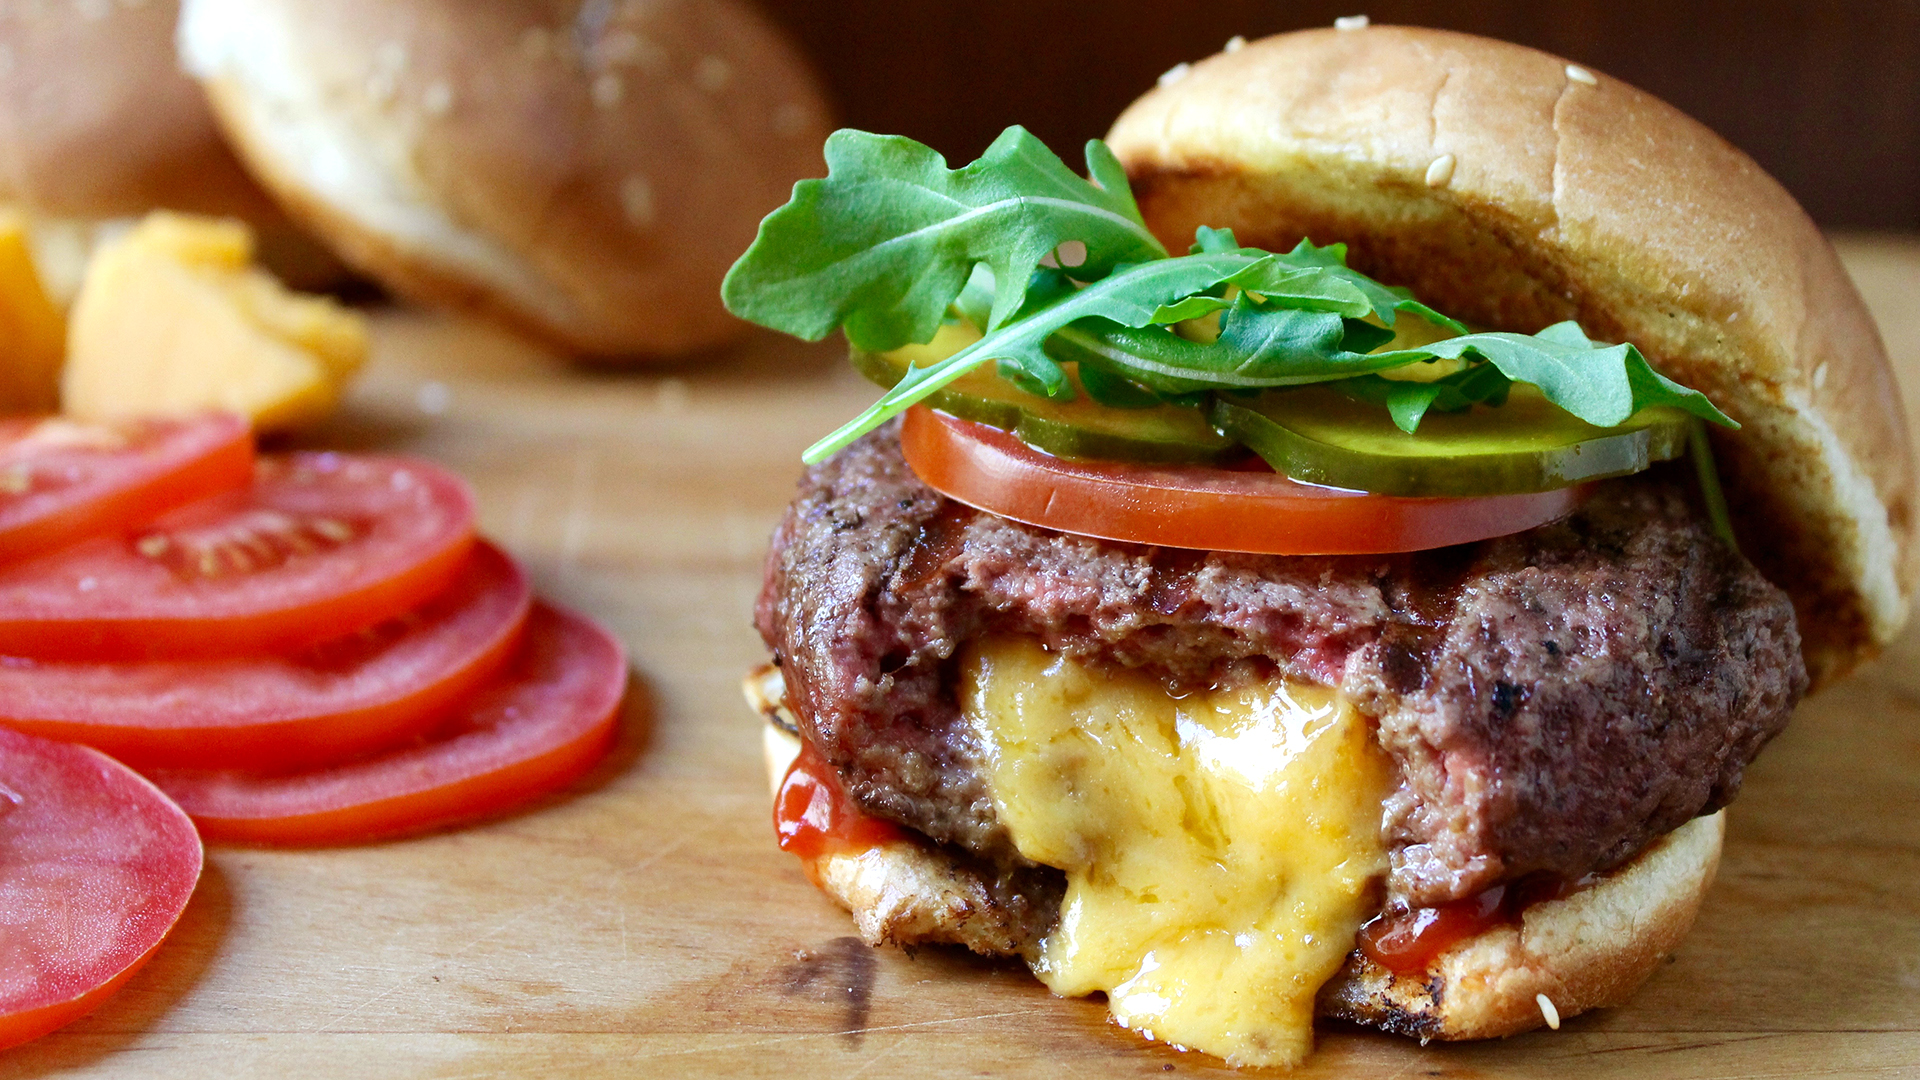 How To Cook Burger With Cheese Inside